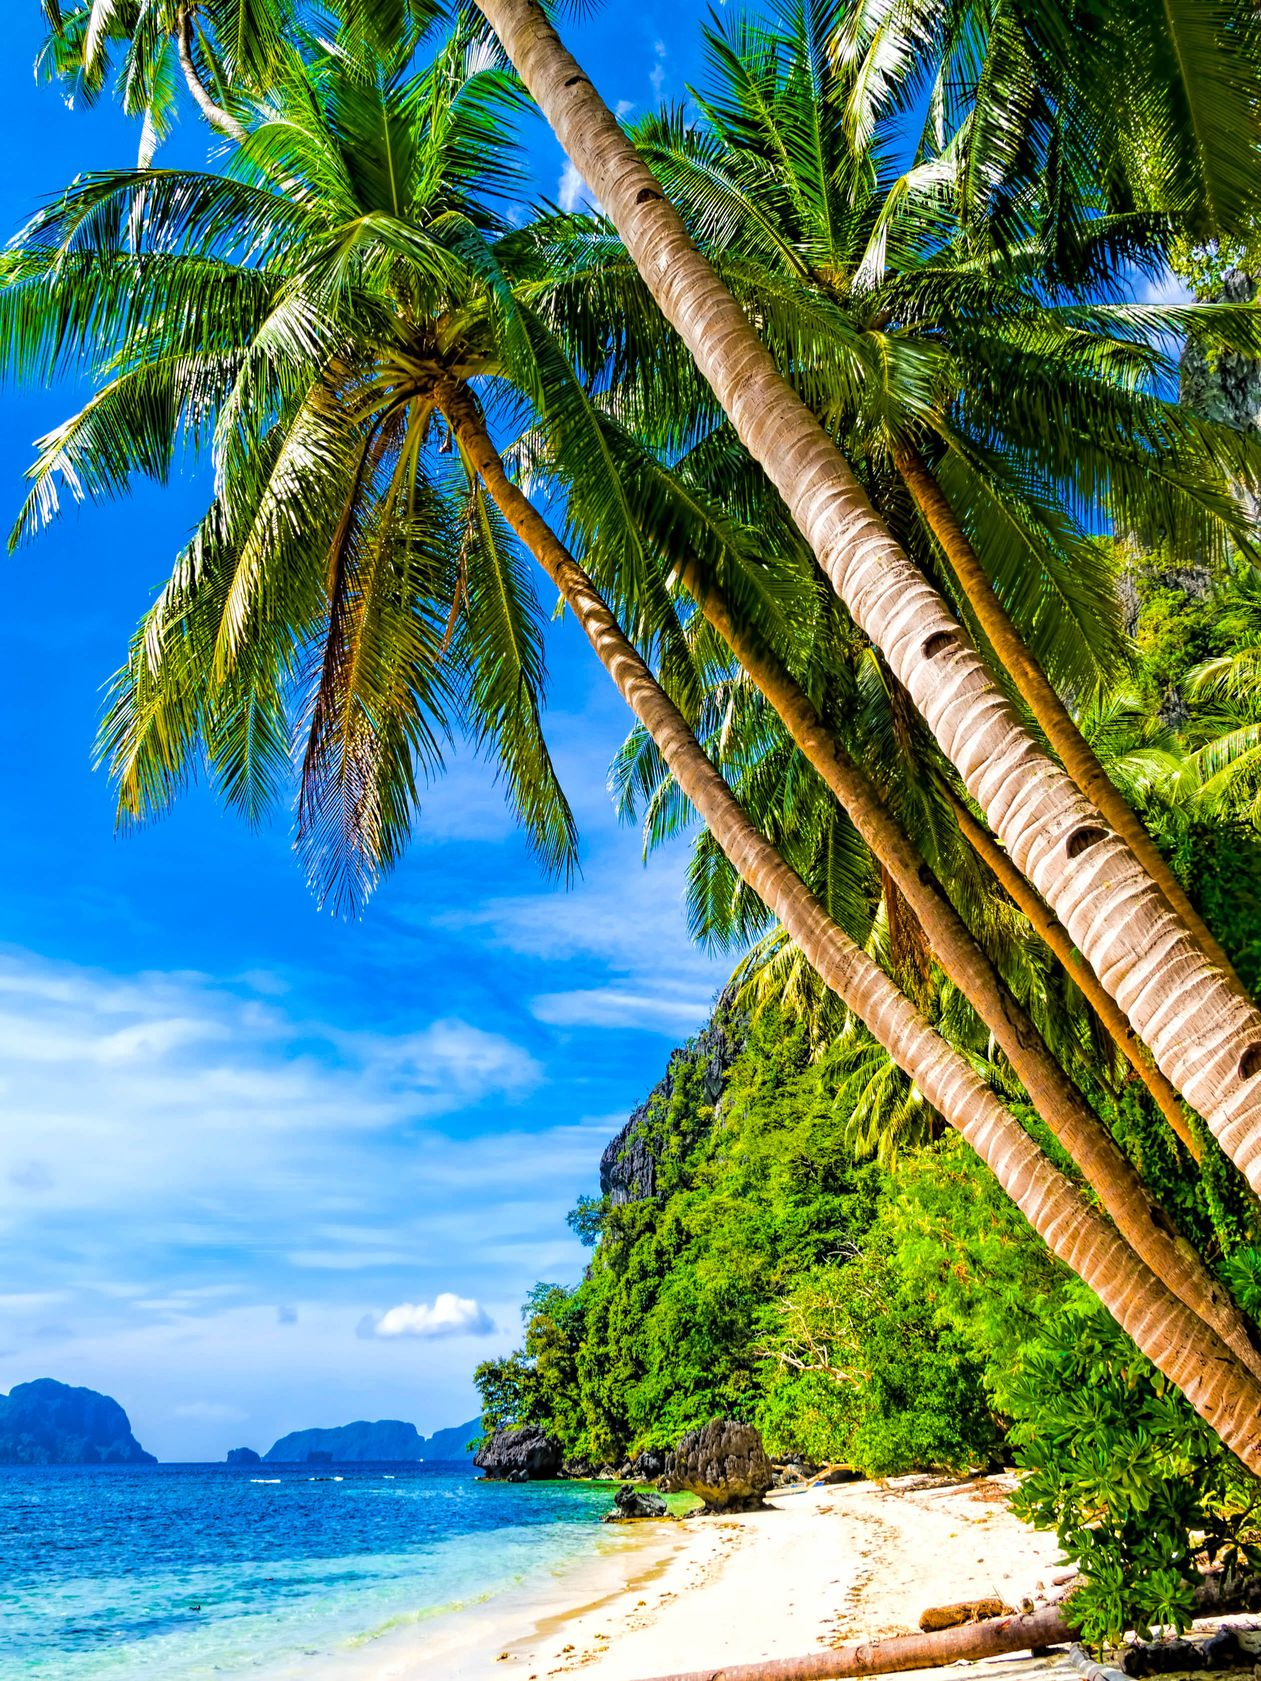 Coconut palms leaning over a white sand beach fronting blue waters with green mountains in the distance in El Nido, Palawan, Philippines